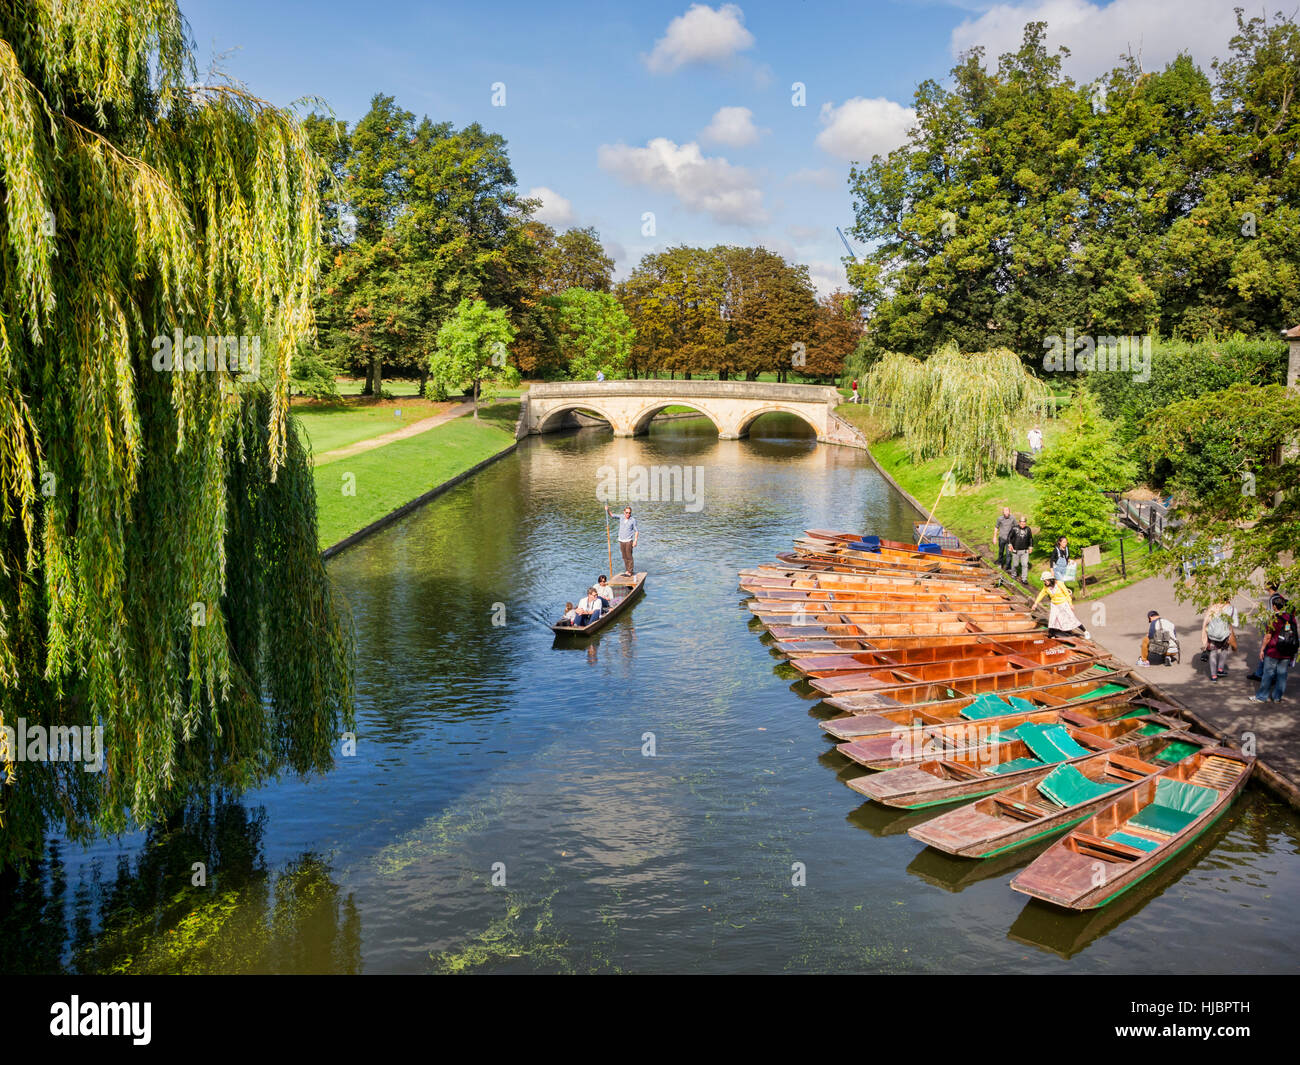 Puniting on the River Cam, Cambridge, England, UK - Stock Image